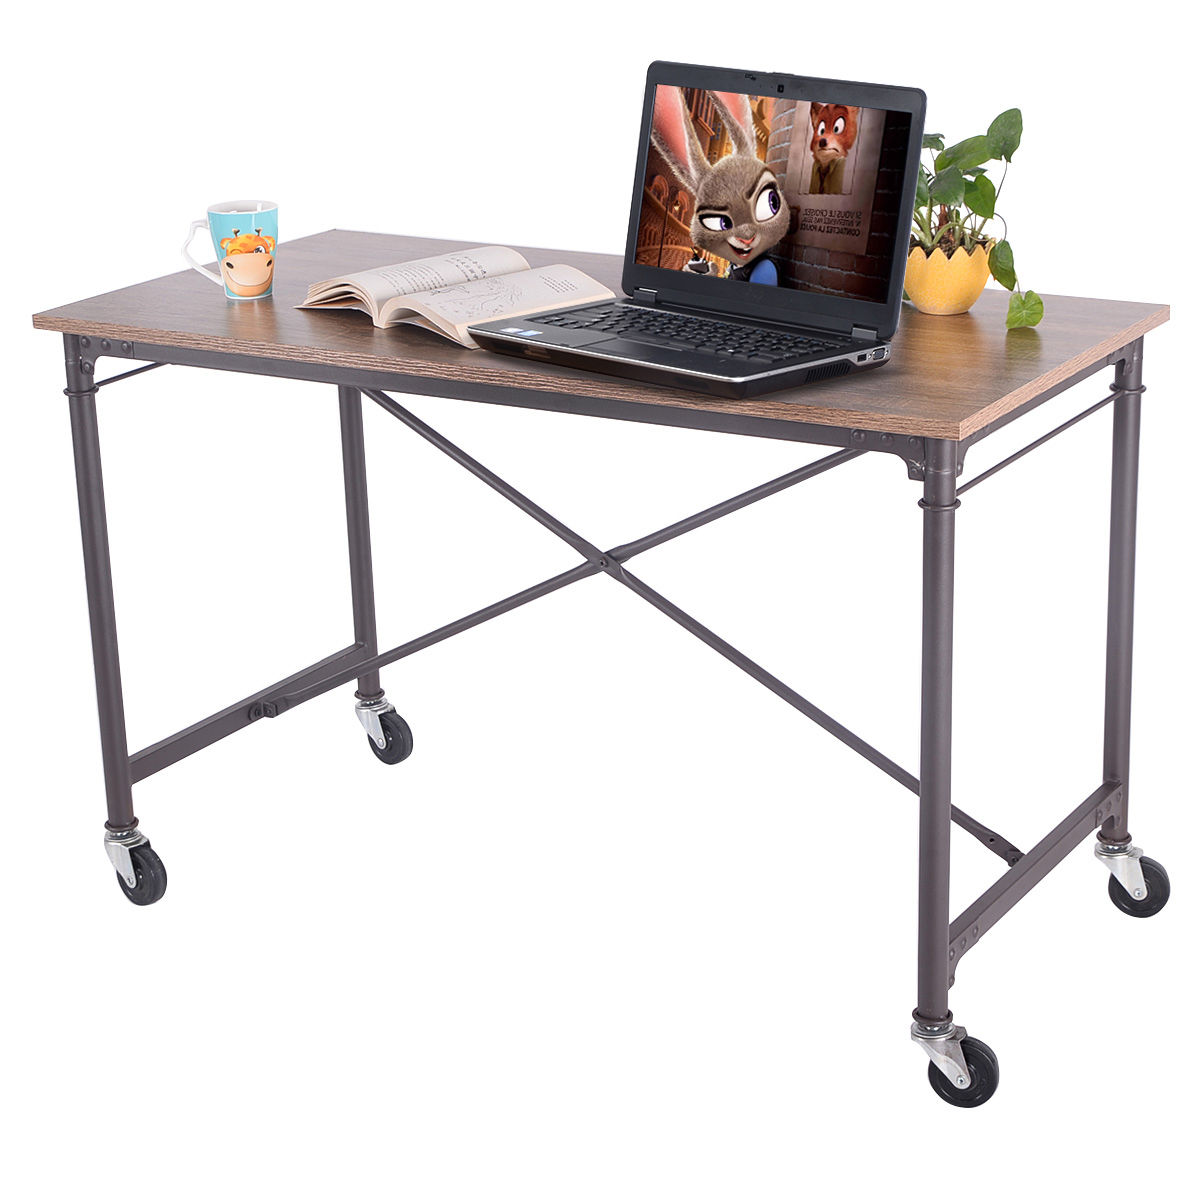 Table On Wheels Giantex Computer Desk Laptop Writing Table Wheels Rolling Portable Wood Desk Modern Home Office Furniture Hw51983